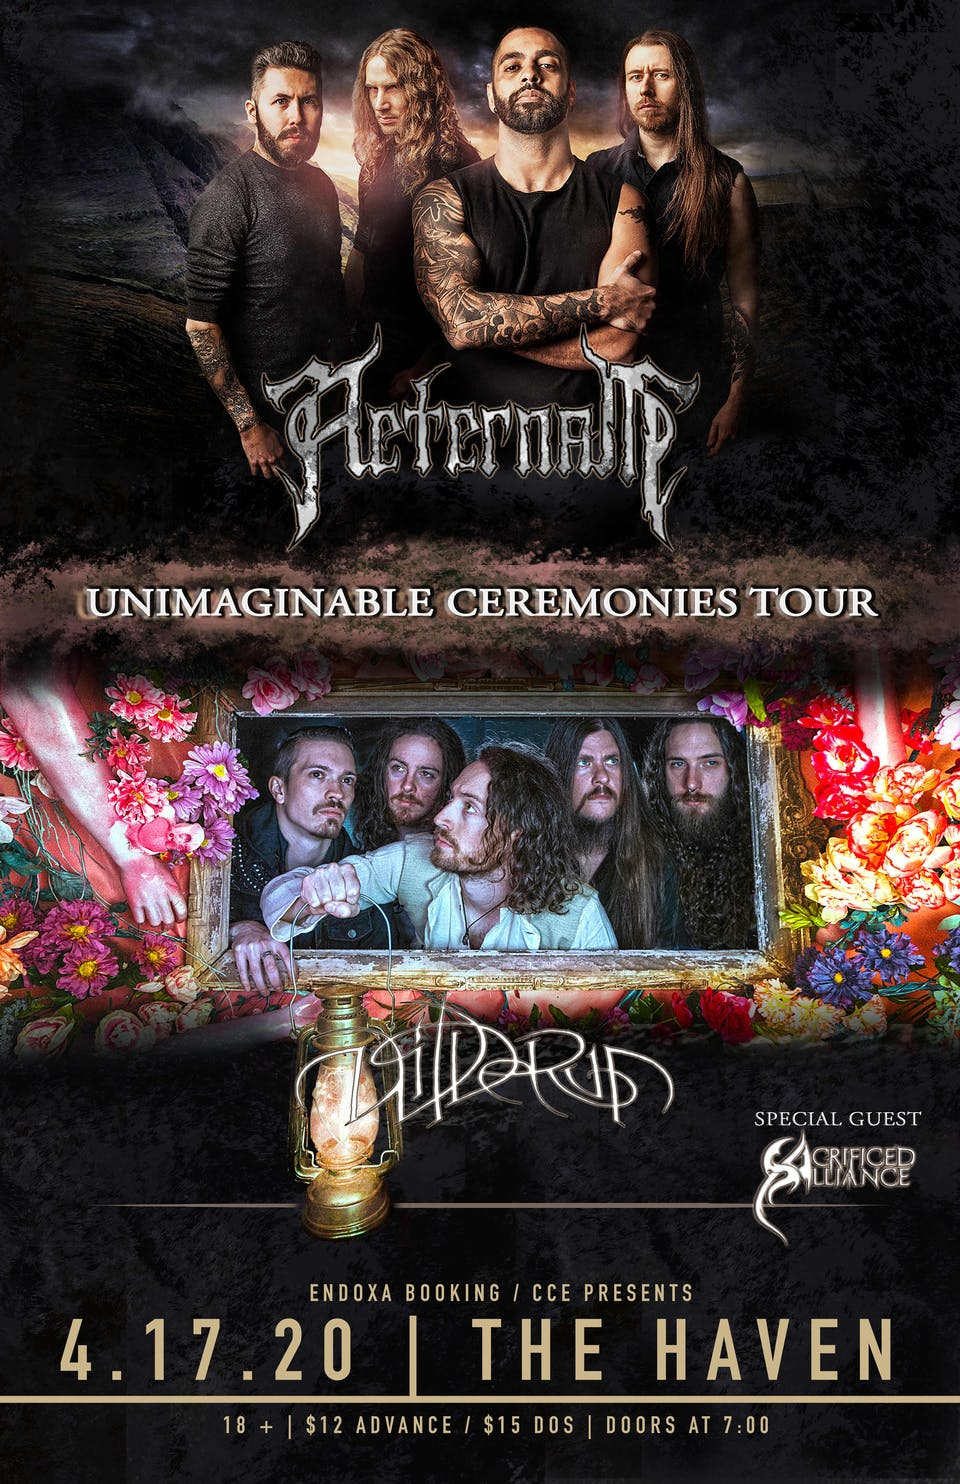 Aeternam, Wilderun, and more in Orlando